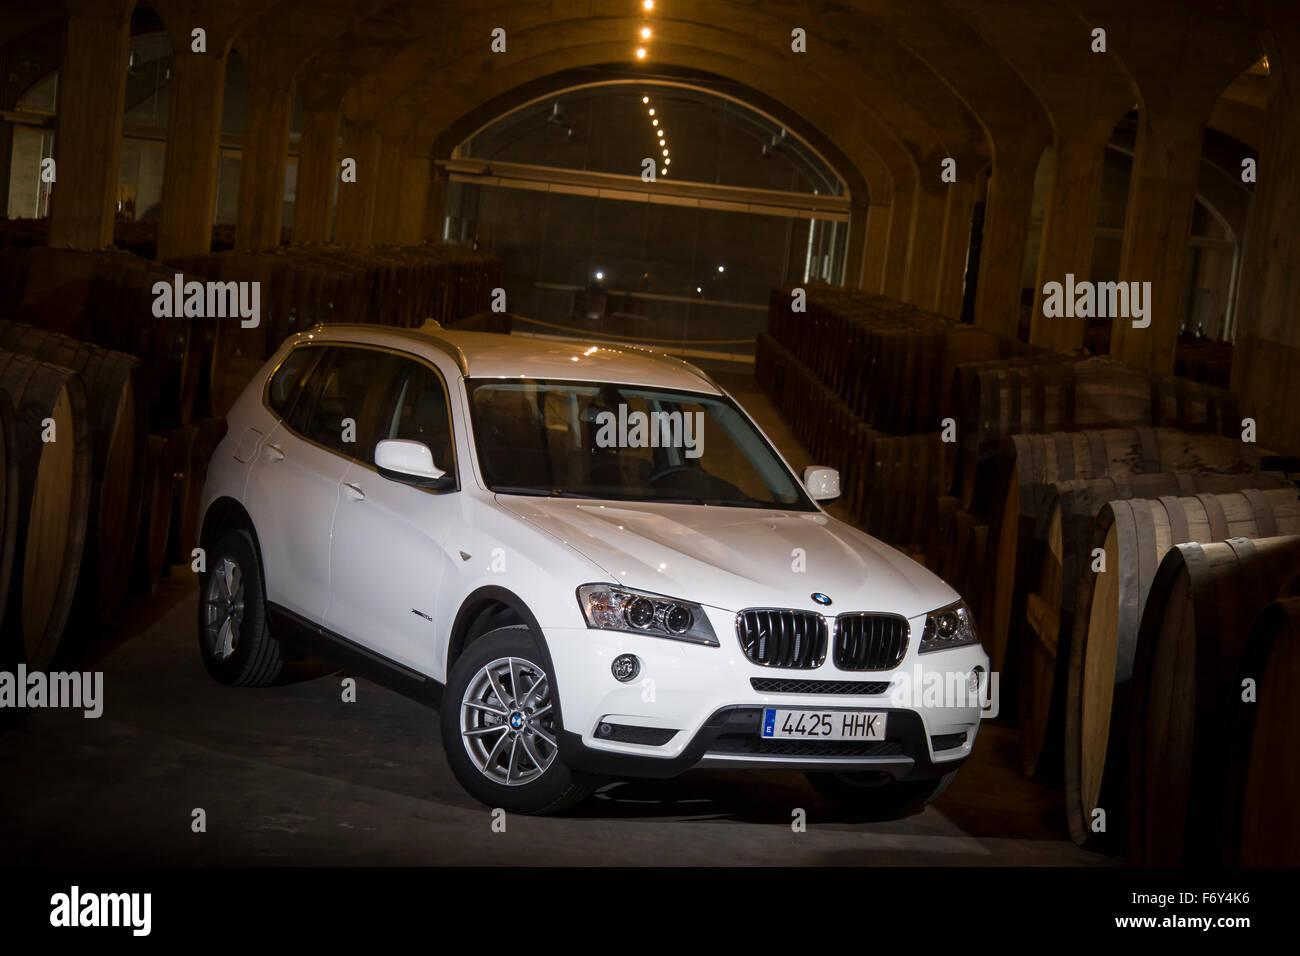 BMW X5 in the wine cellar called BSI in Jumilla, Spain - Stock Image